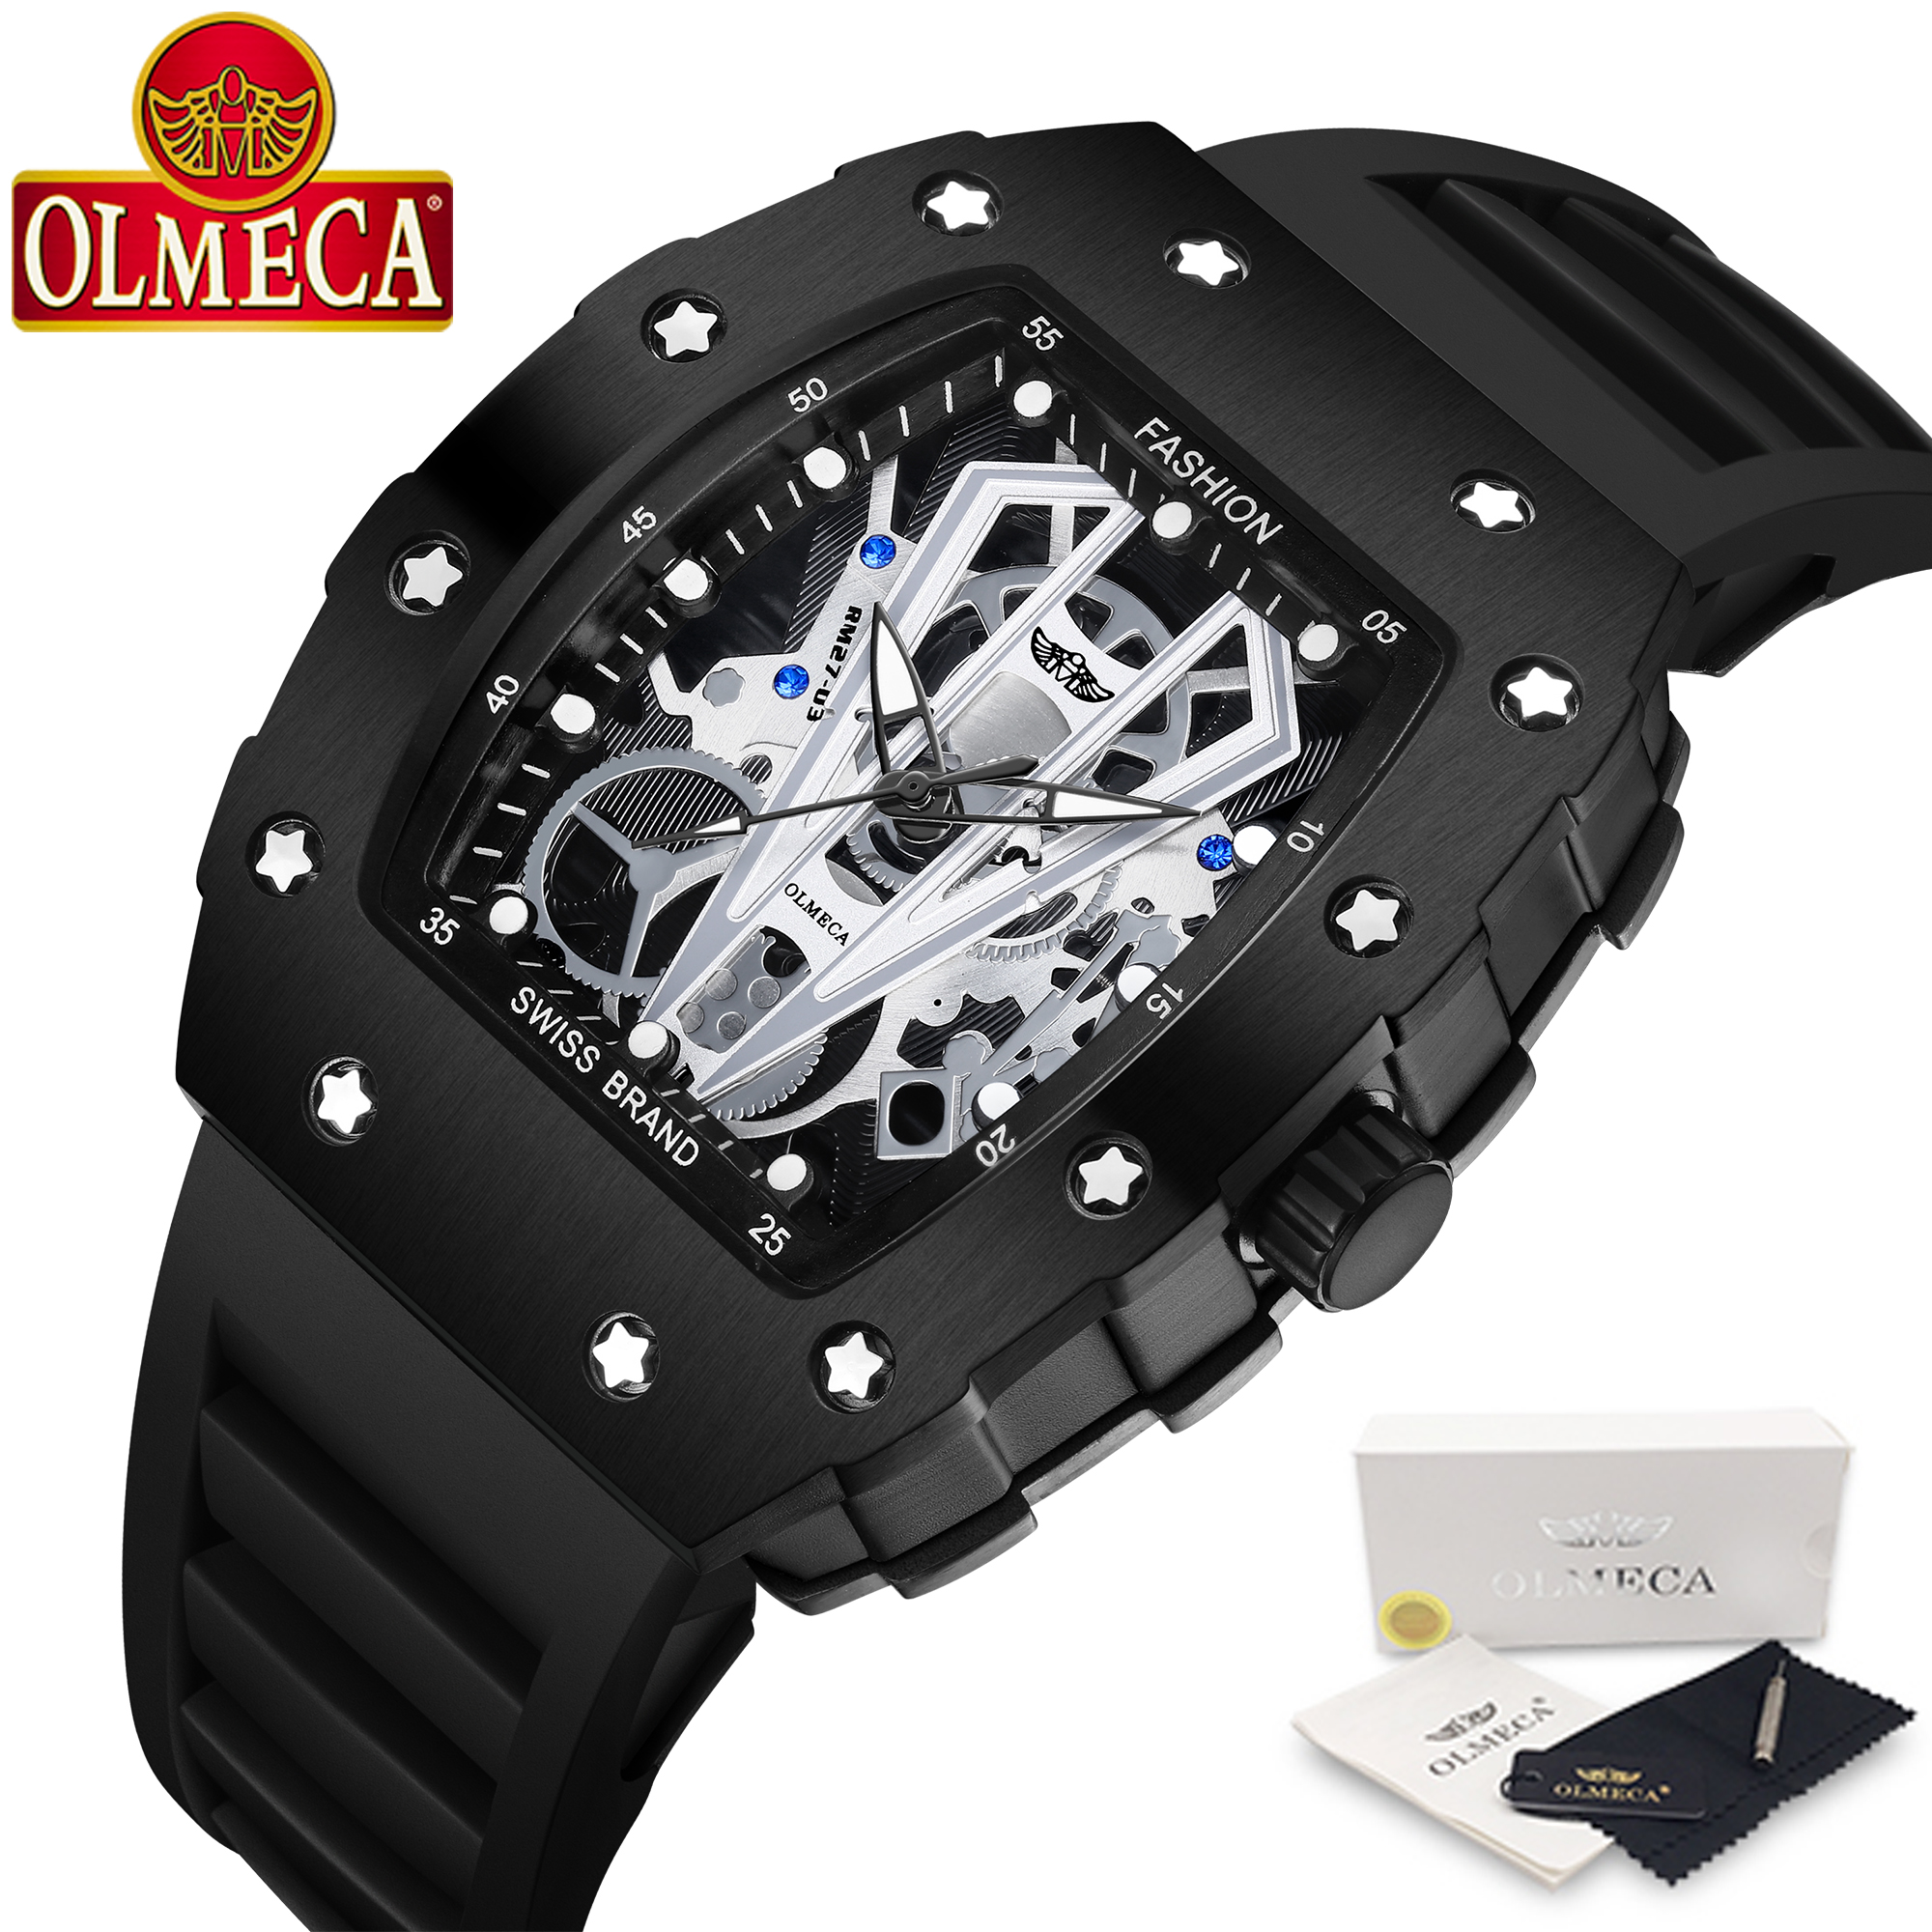 OLMECA Men's Luxury Famous Top Brand Military Army Fashion Sport Automatic Mechanical Dial Style Waterproof Luminous Chronograph (Black)